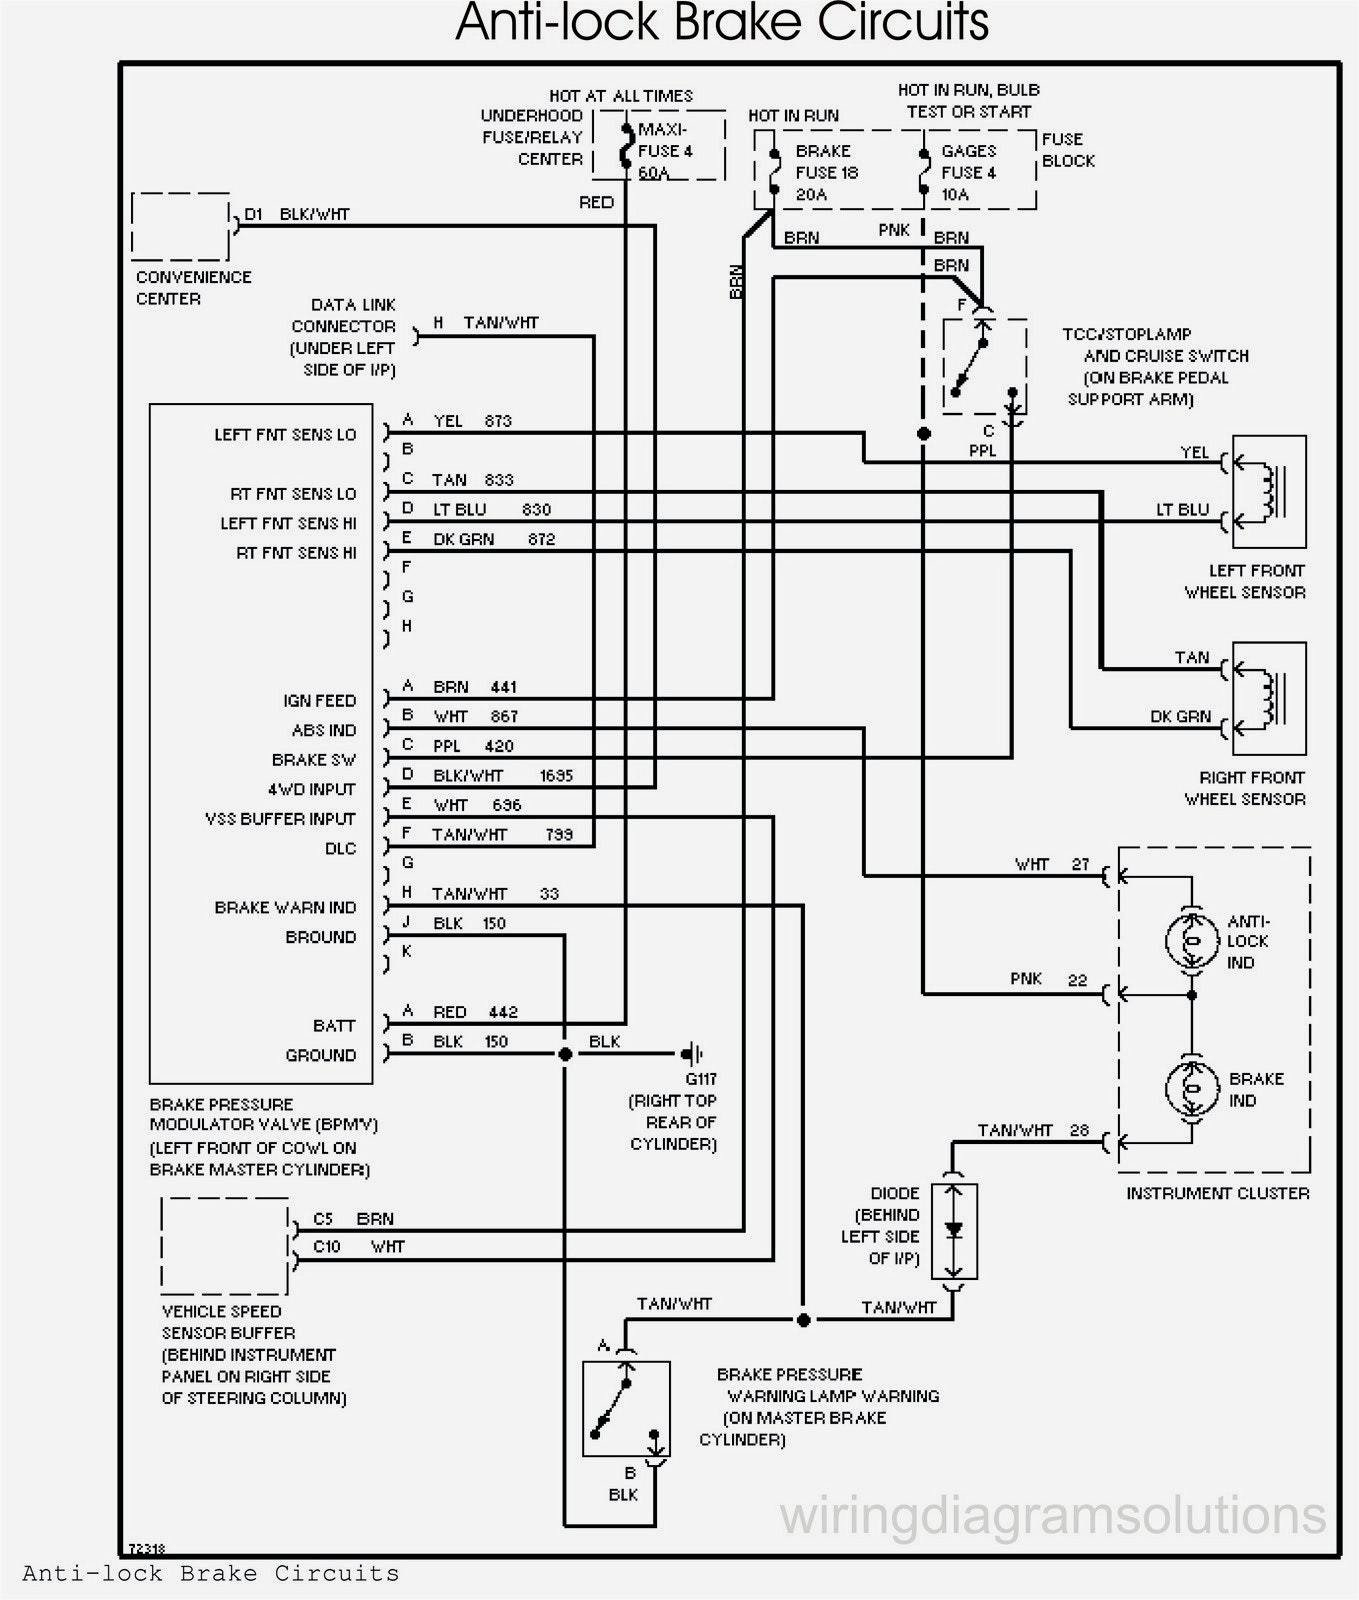 Voyager Camera Wiring Diagram from 2020cadillac.com